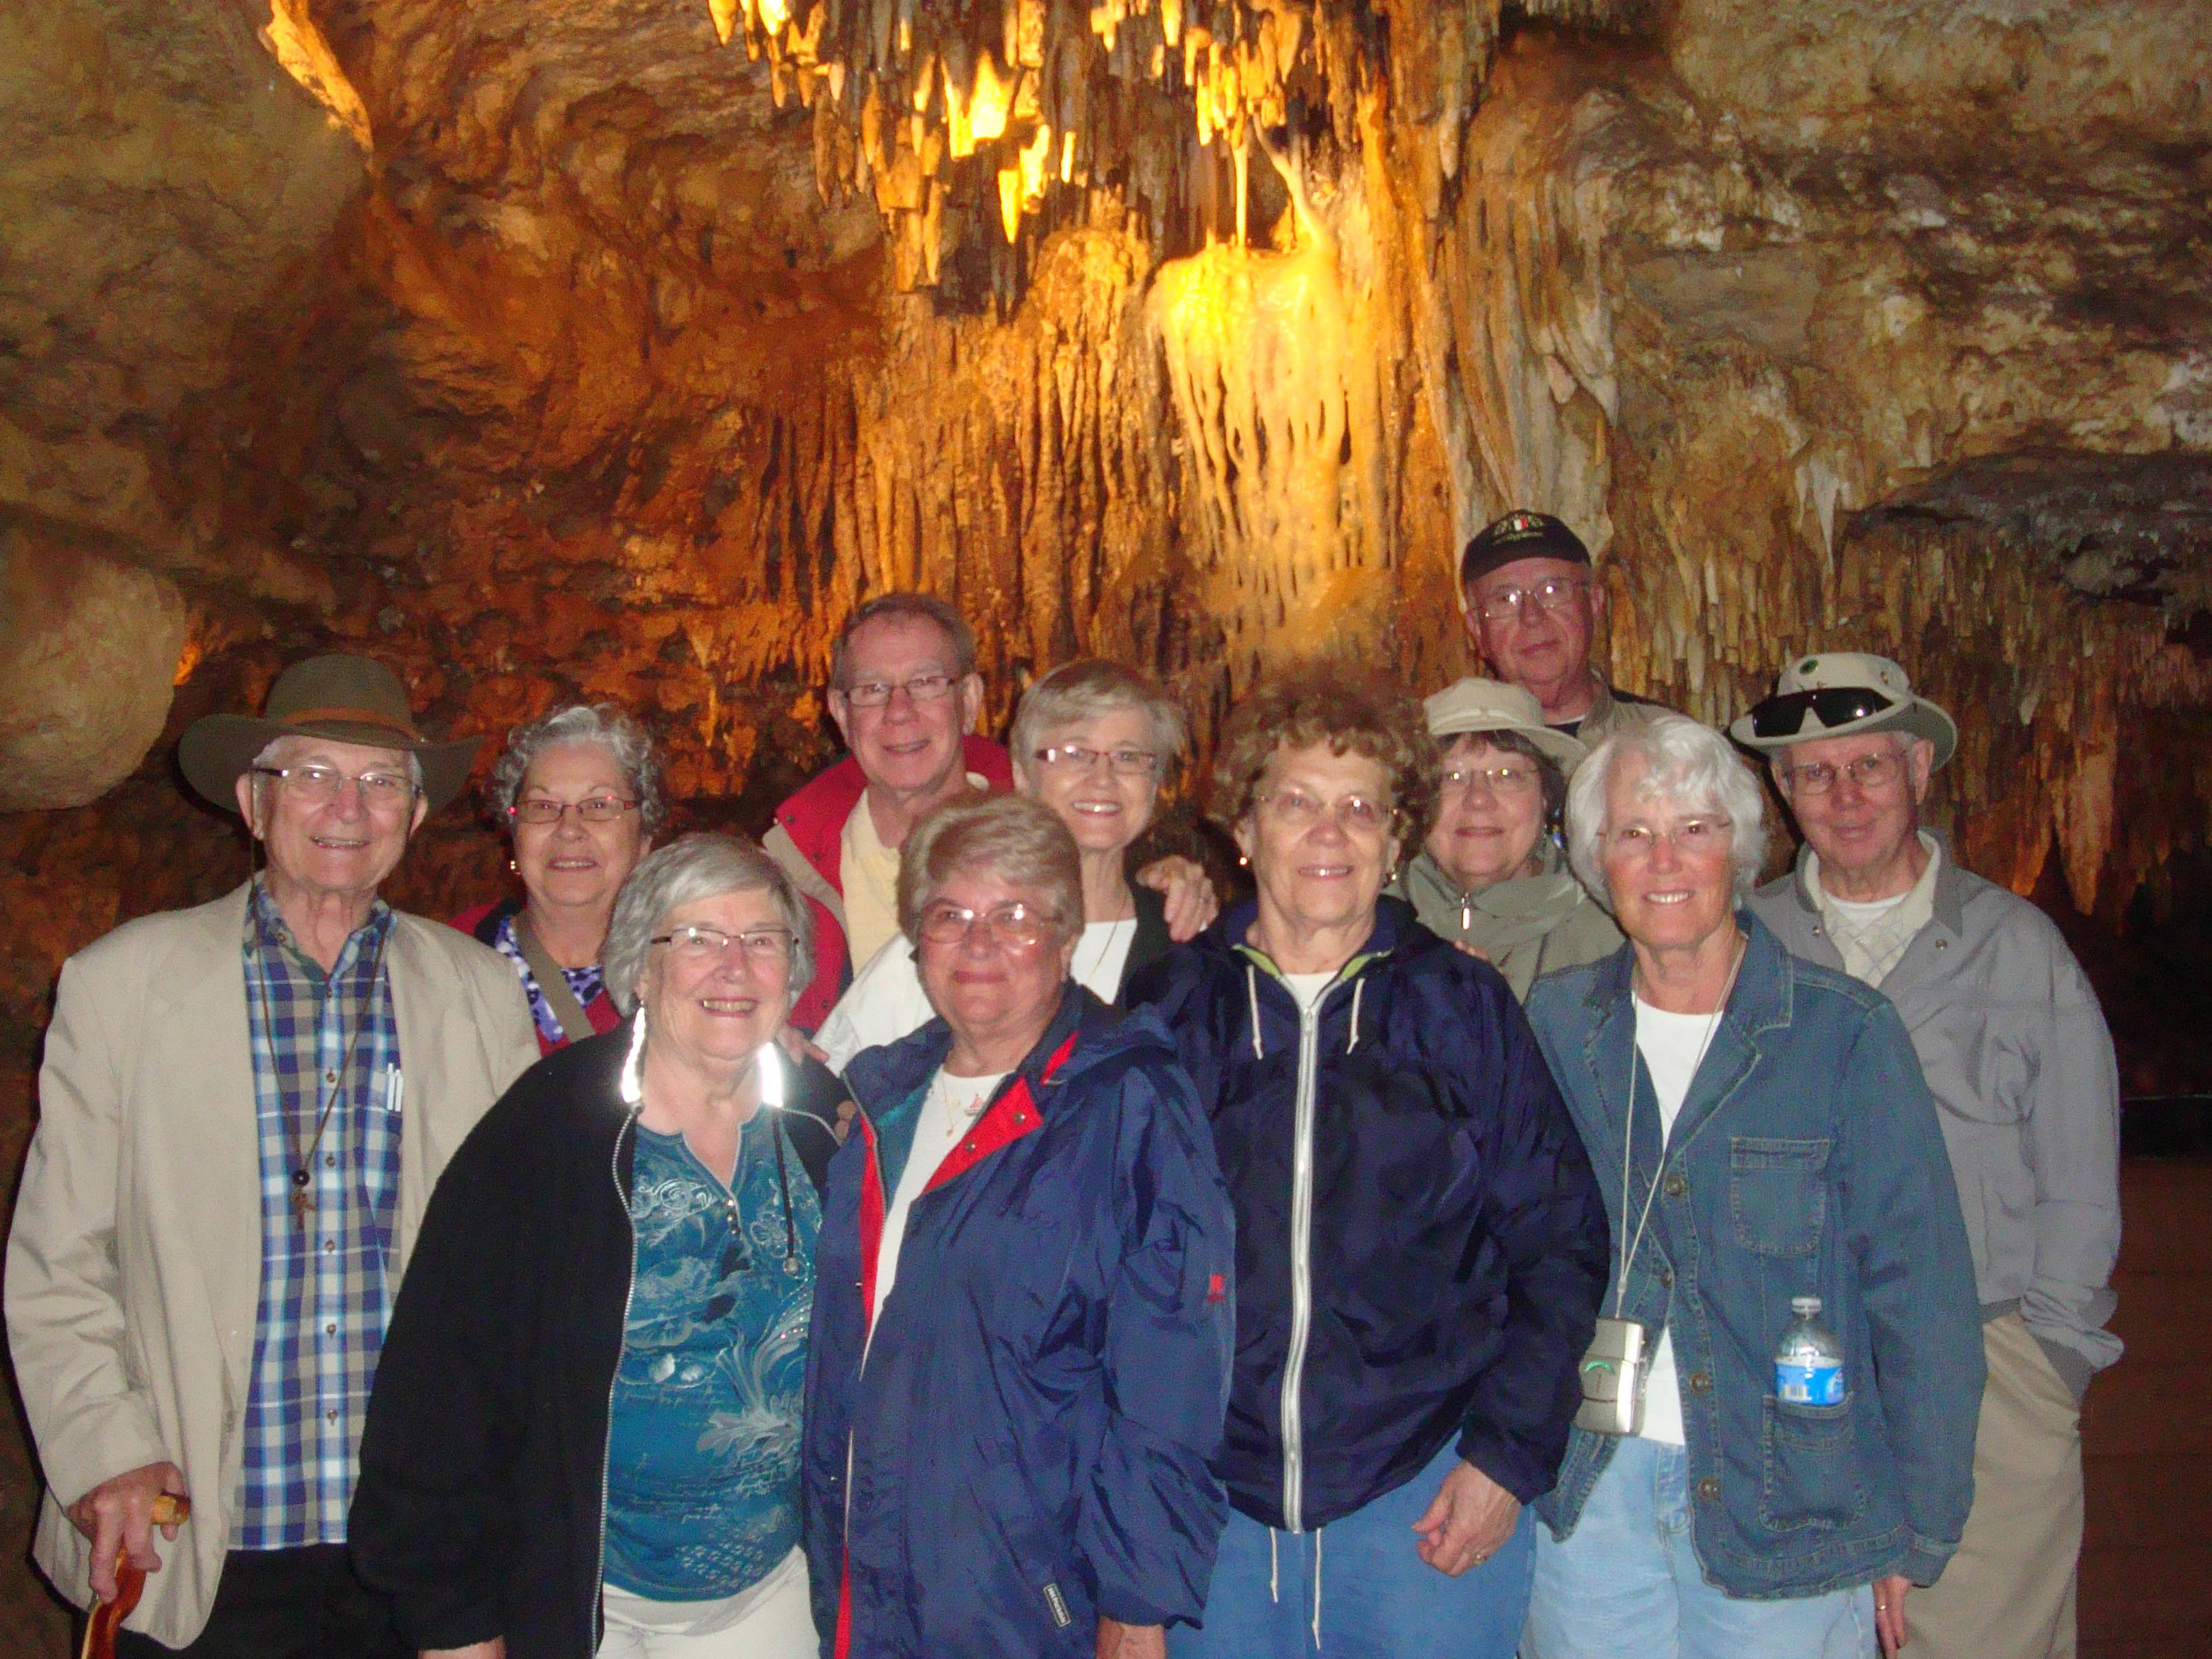 Members of the EAGLES checking out the caves in North Eastern Iowa.